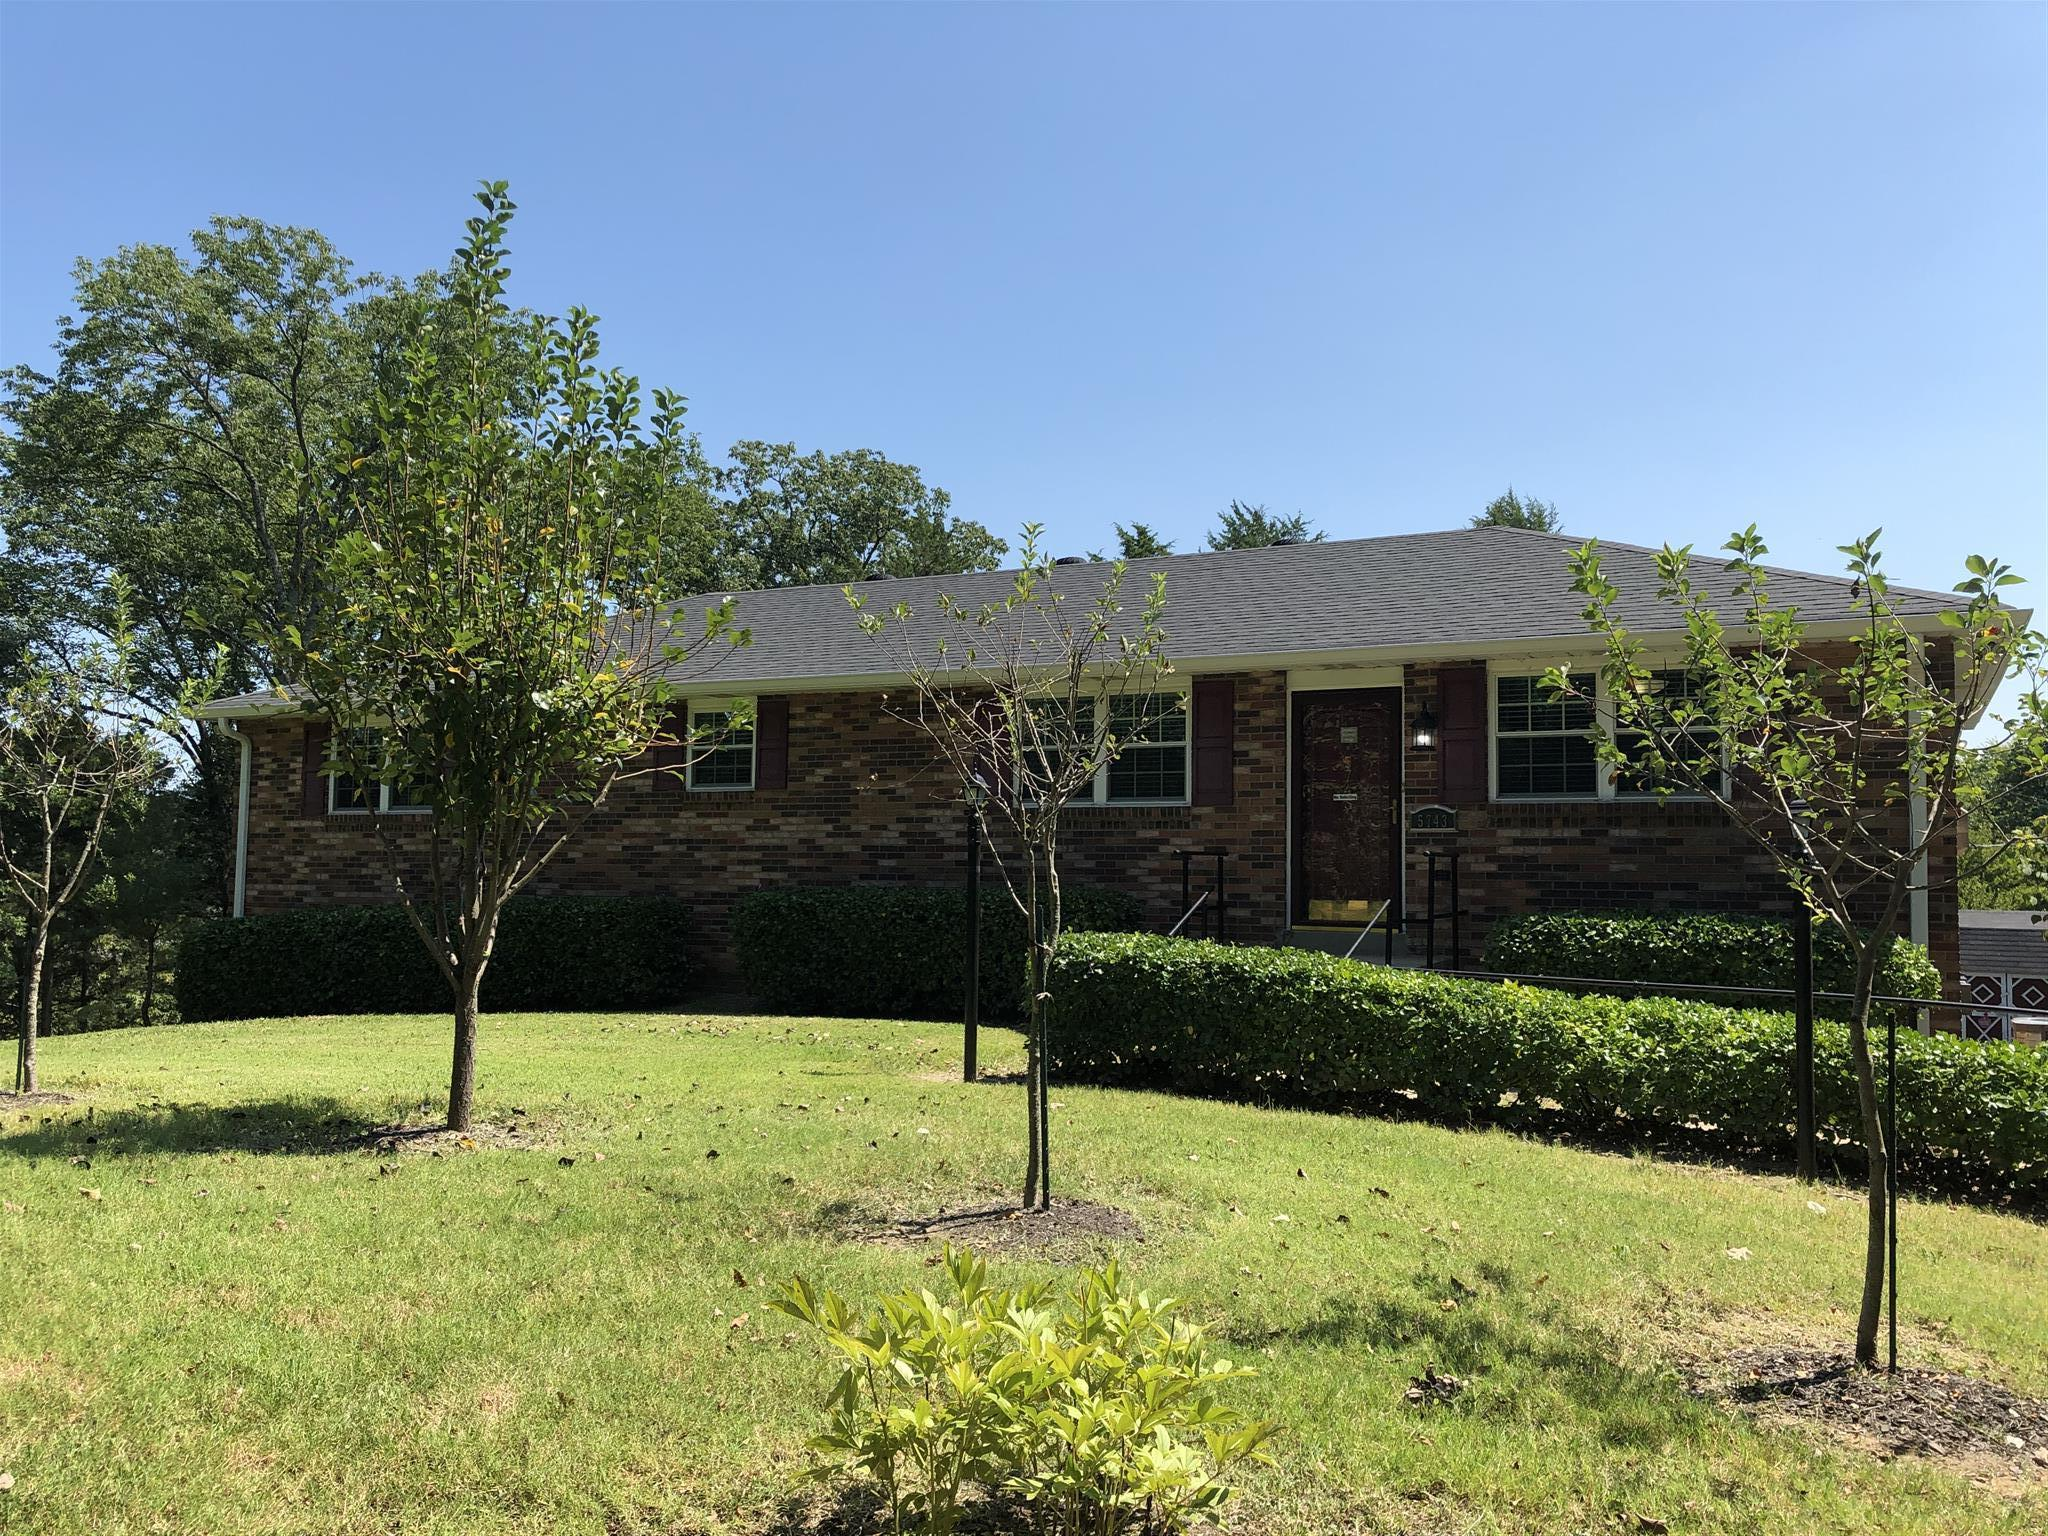 5743 S New Hope Rd, Hermitage, TN 37076 - Hermitage, TN real estate listing